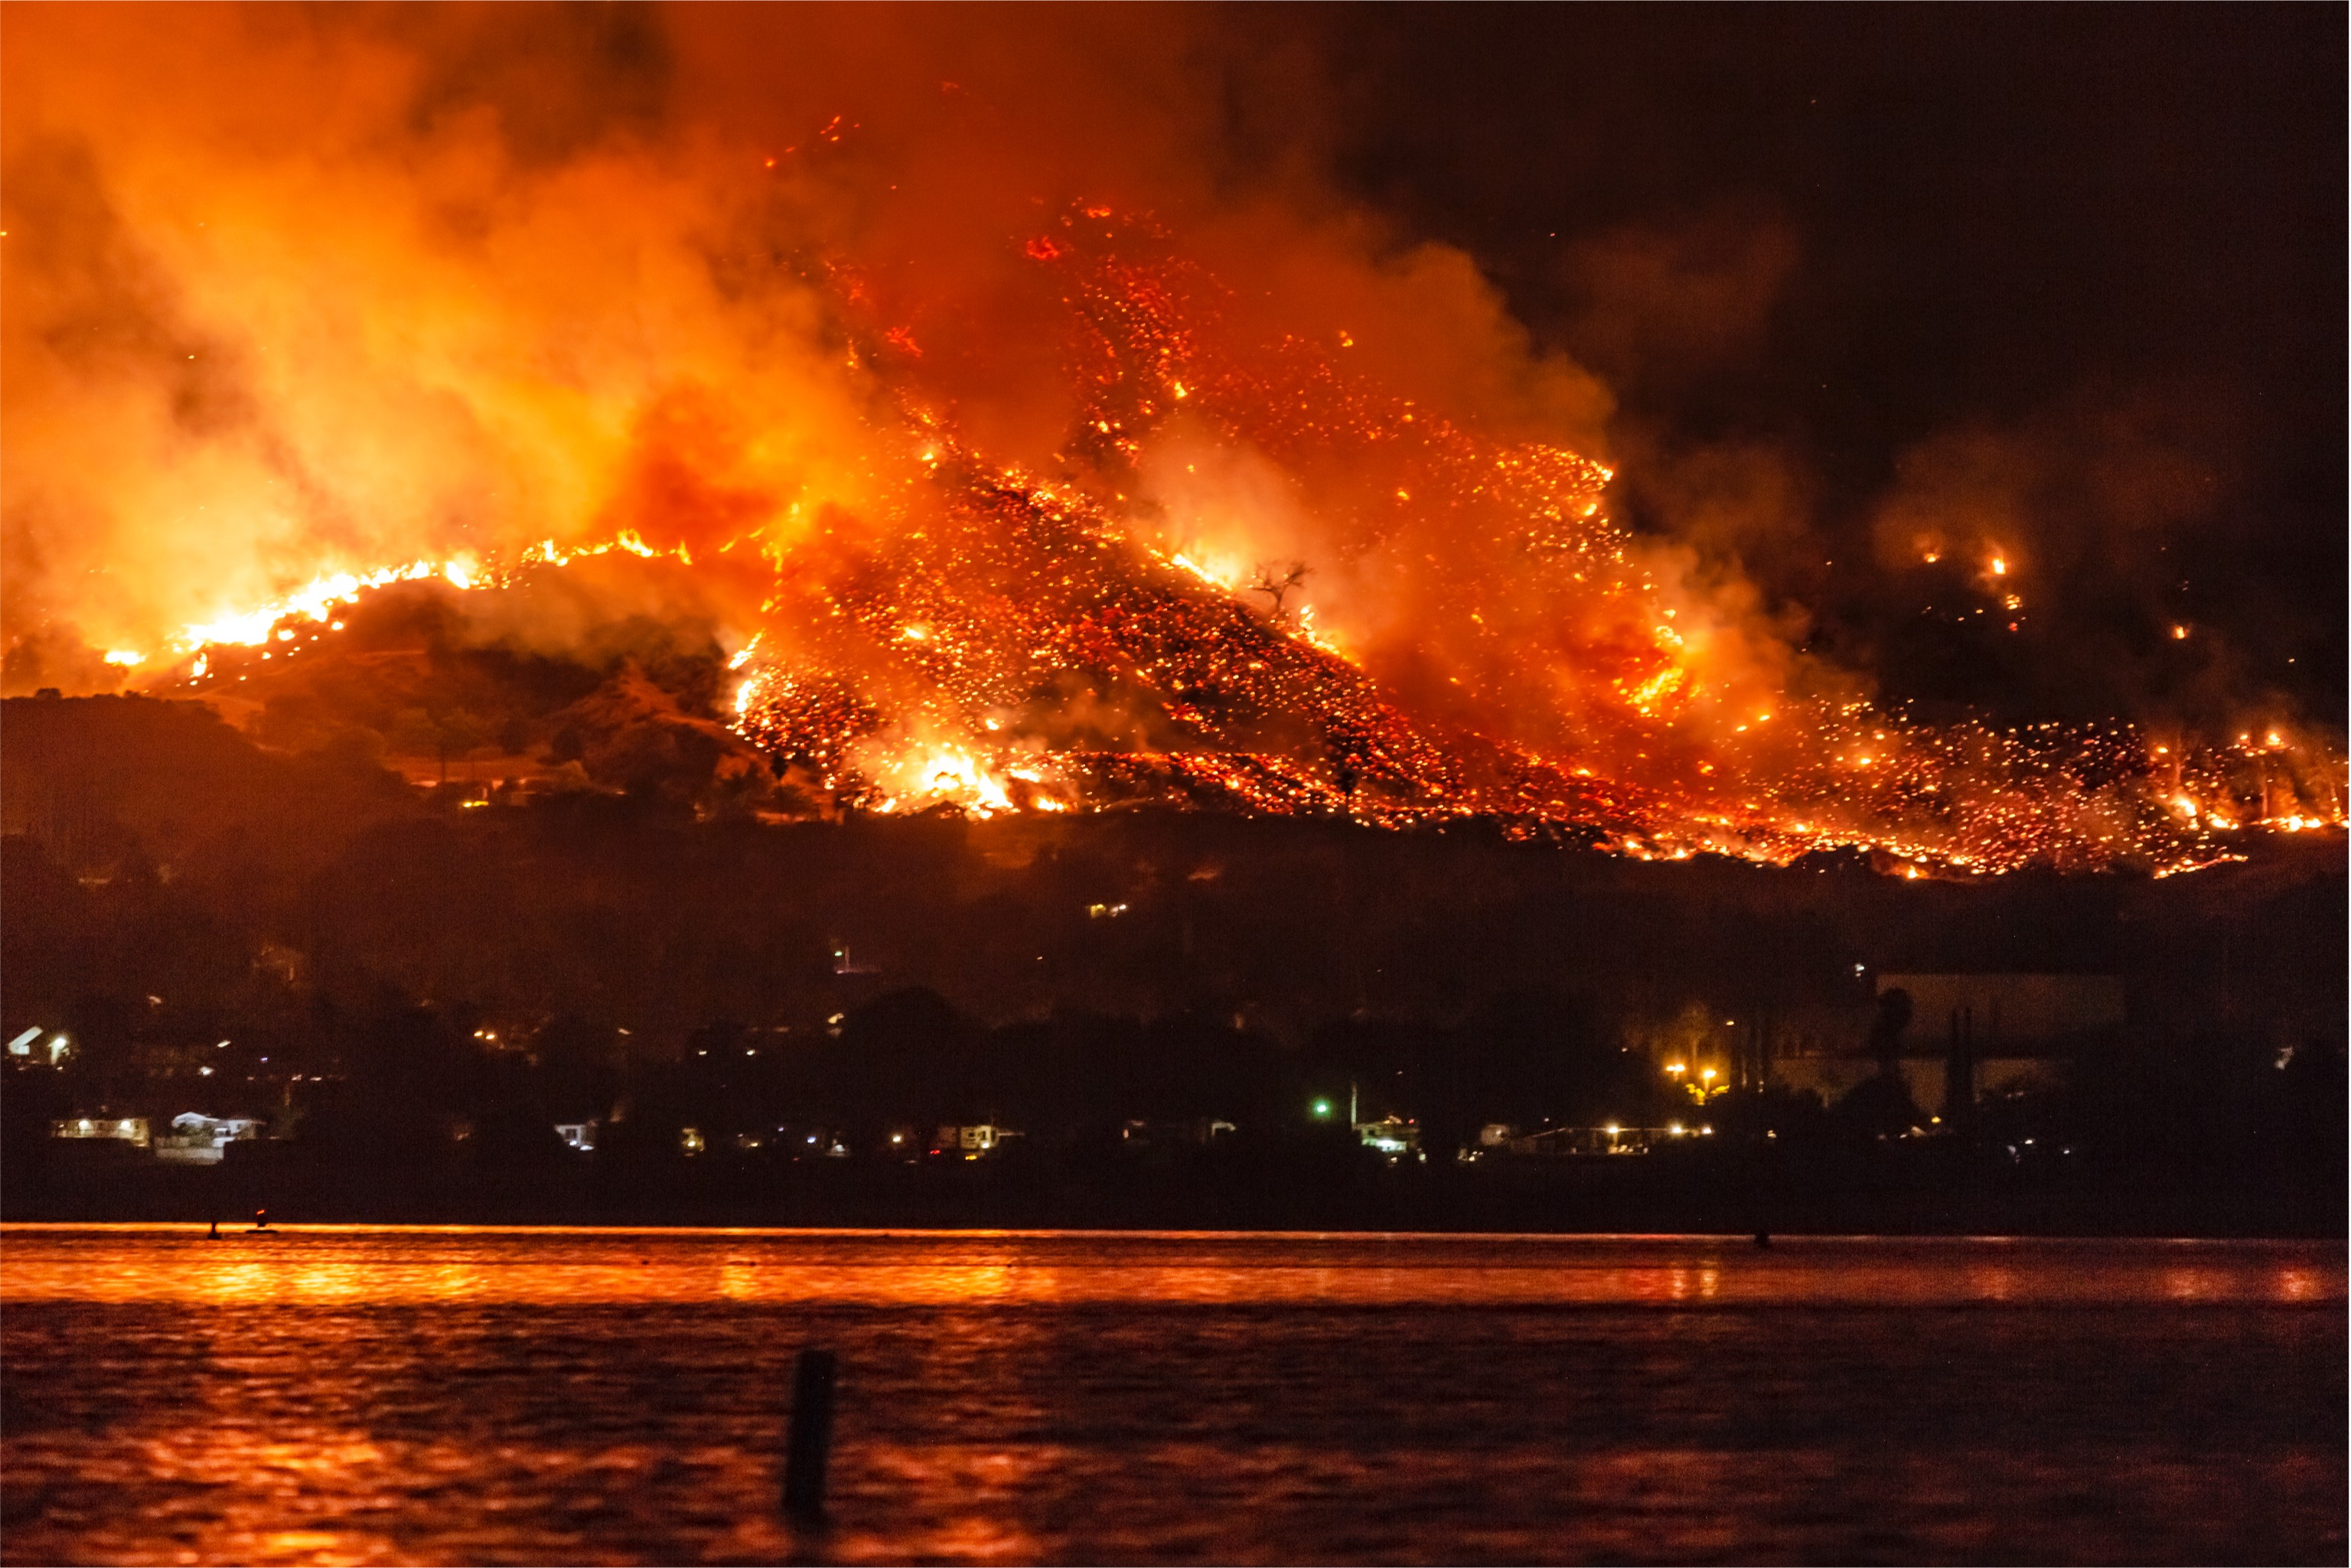 California Wildfires: The Holy Fire At Lake Elsinore On August 9, 2018.